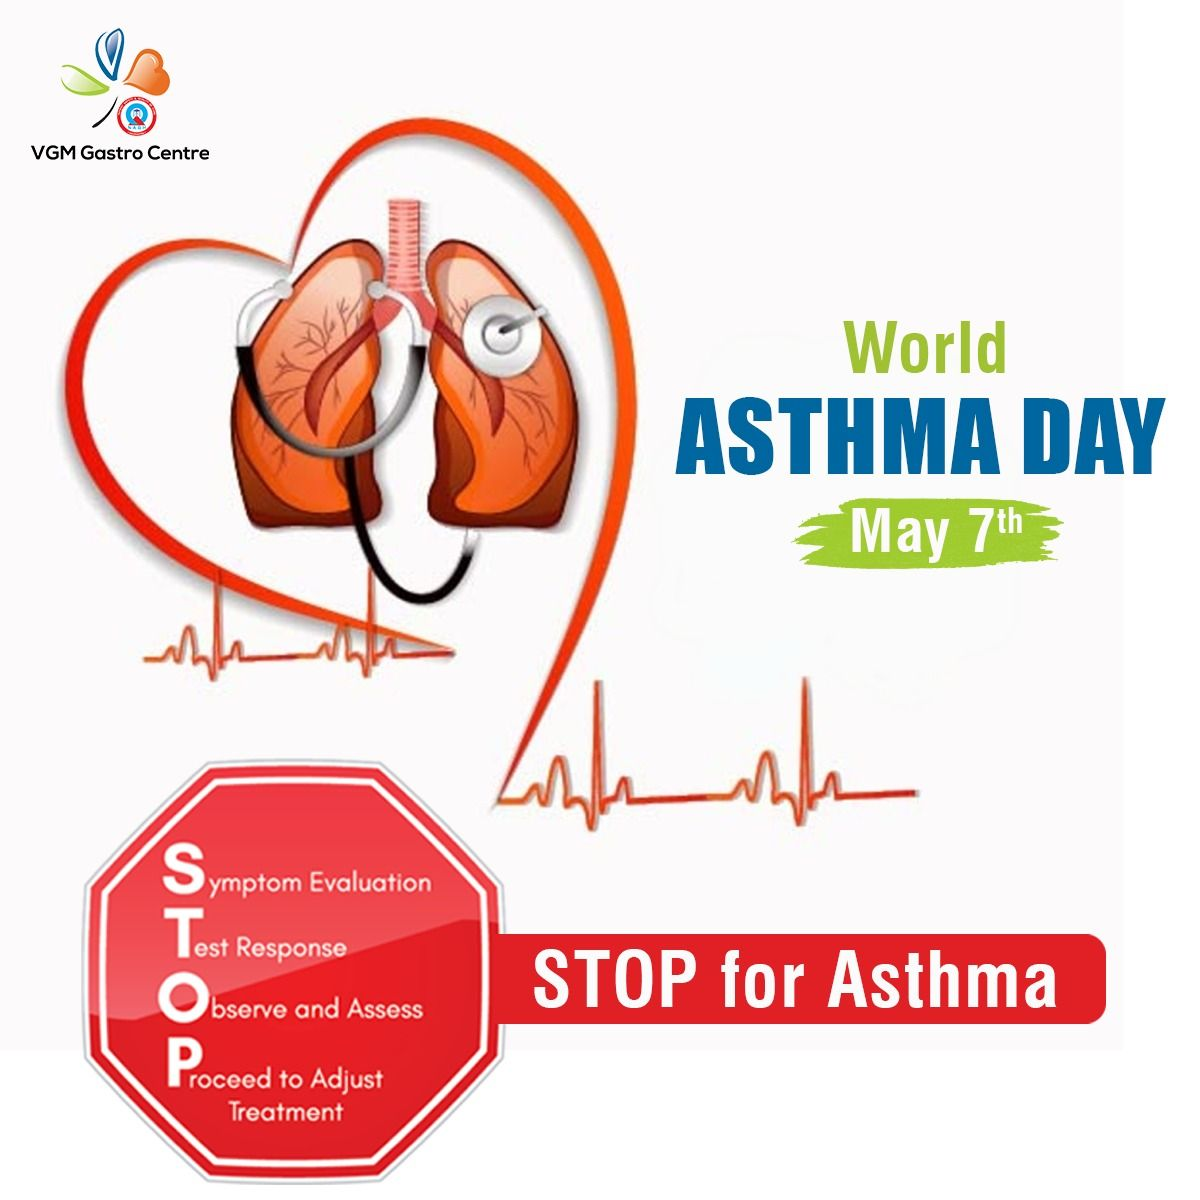 World Asthma Day Vgm Gastro Centre Asthma Attacks Asthma Asthma Symptoms